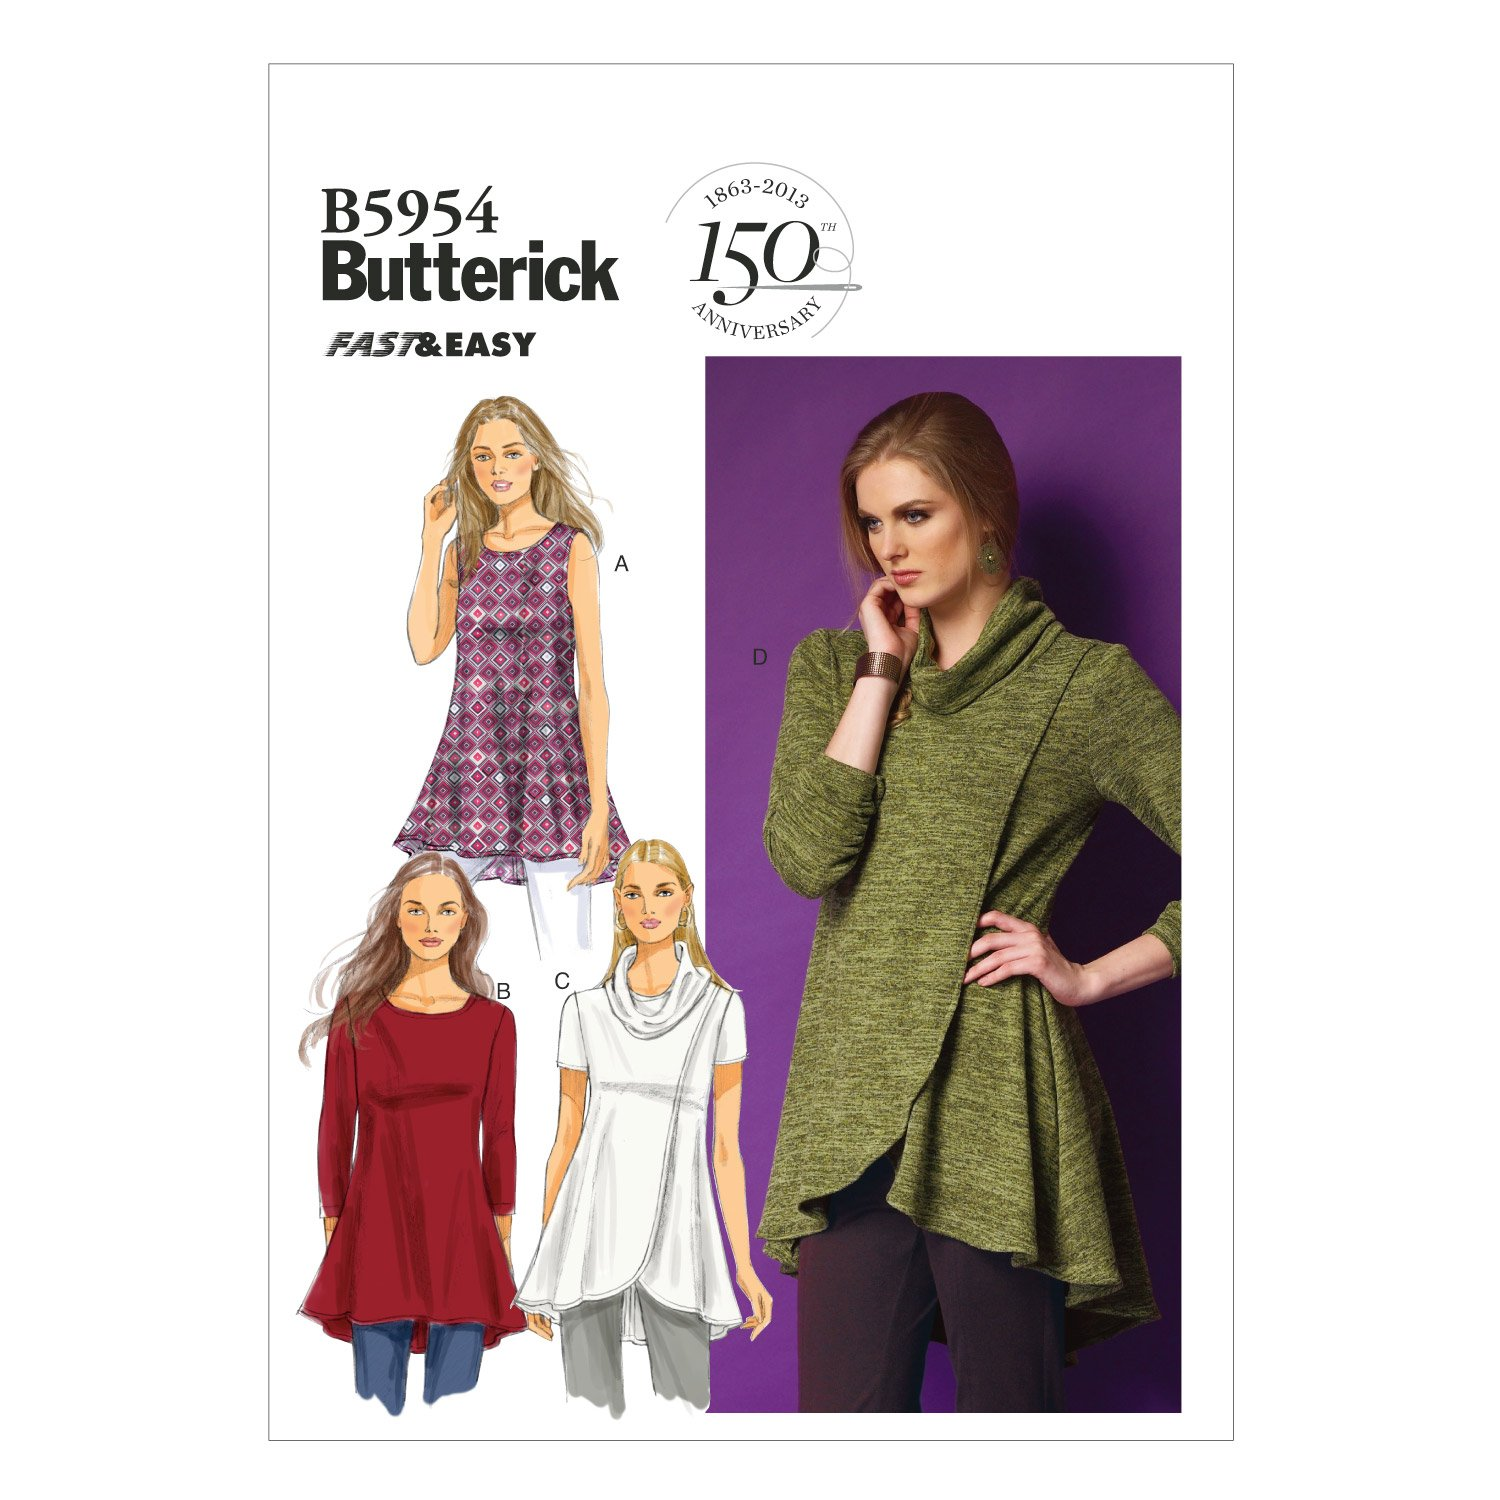 Butterick Patterns B5954 Y Misses Tunic, White McCall's Patterns B59540Y0